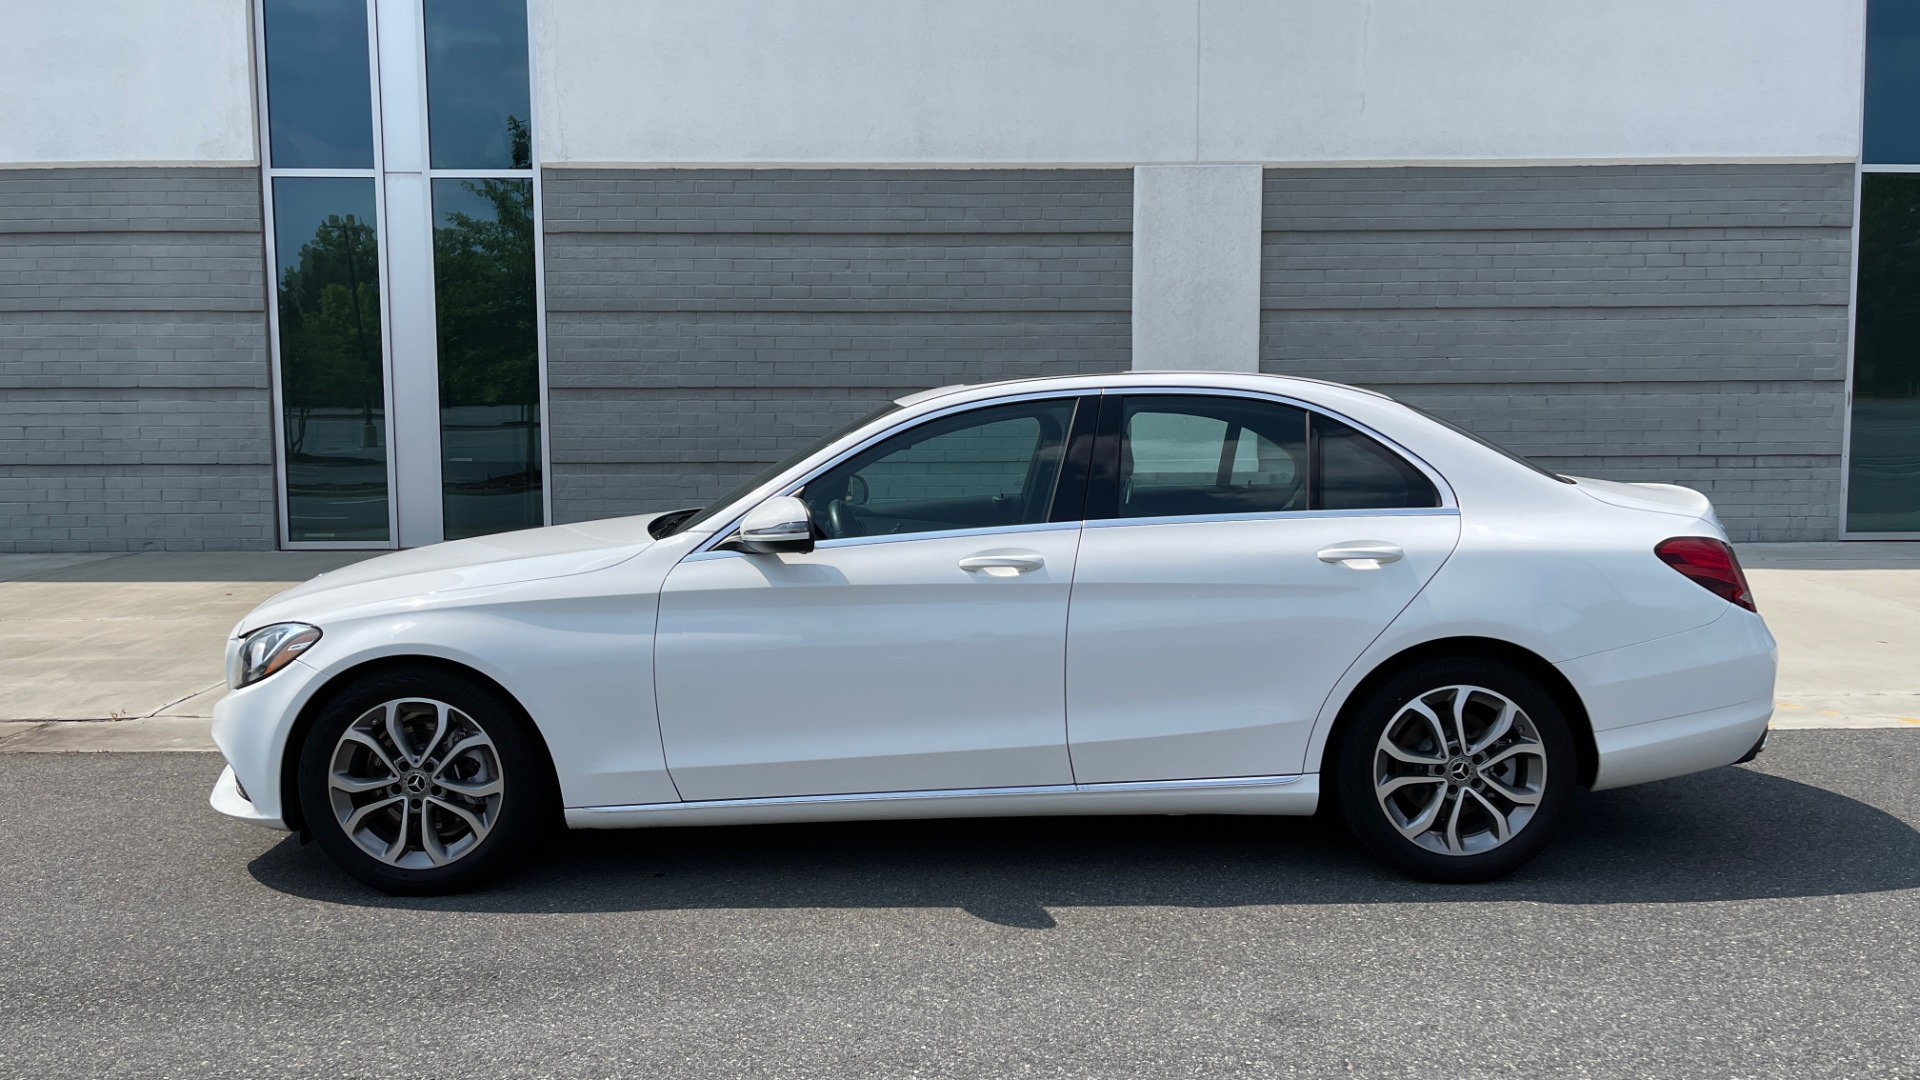 Used 2018 Mercedes-Benz C-CLASS C 300 / 2.0L / RWD / SUNROOF / APPLE~ANDROID / REARVIEW for sale $29,995 at Formula Imports in Charlotte NC 28227 4